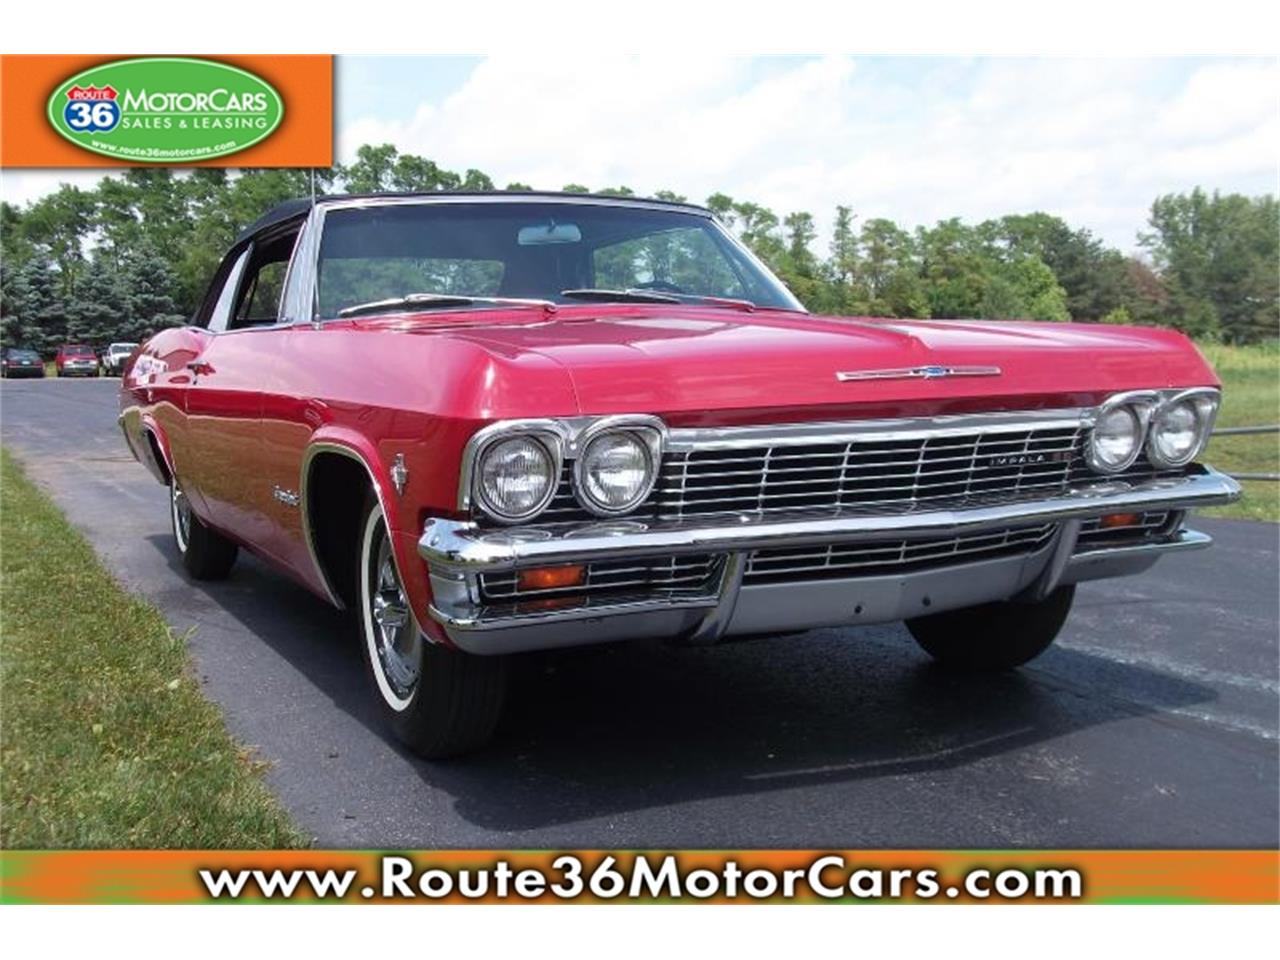 Large Picture of '65 Impala SS located in Ohio - $84,475.00 Offered by Route 36 Motor Cars - IKGZ